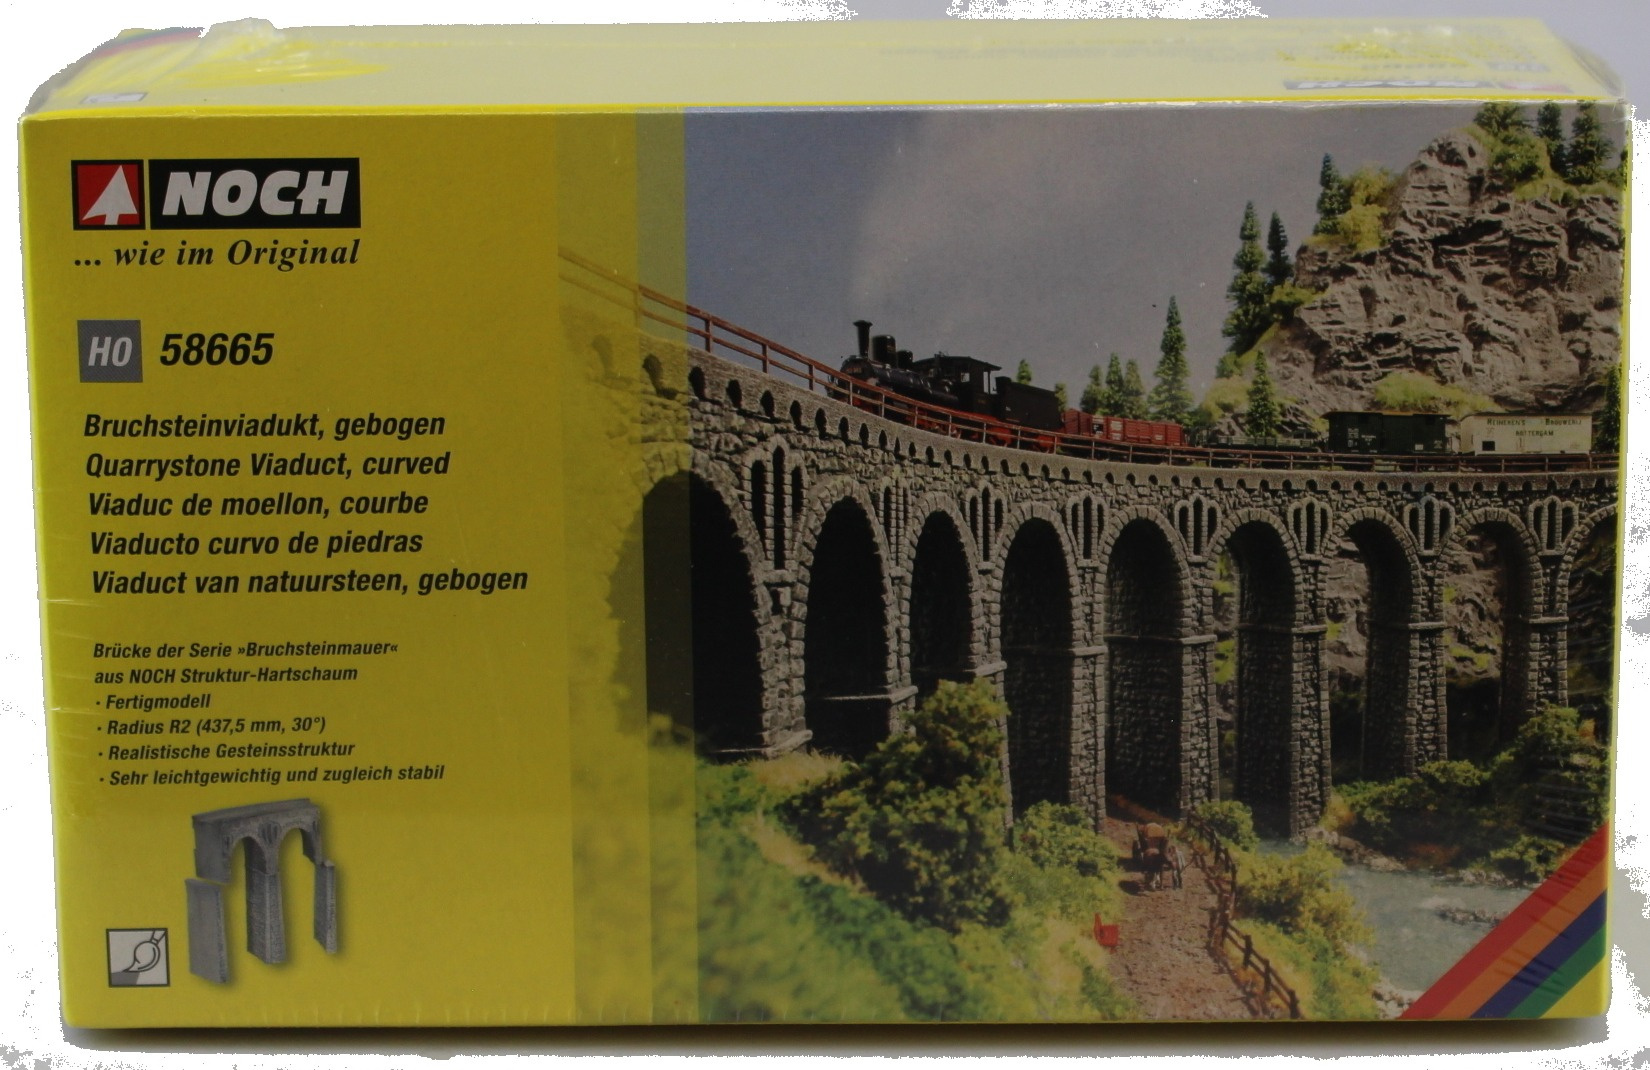 NOCH 58665 HO undressed stone viaduct, curved